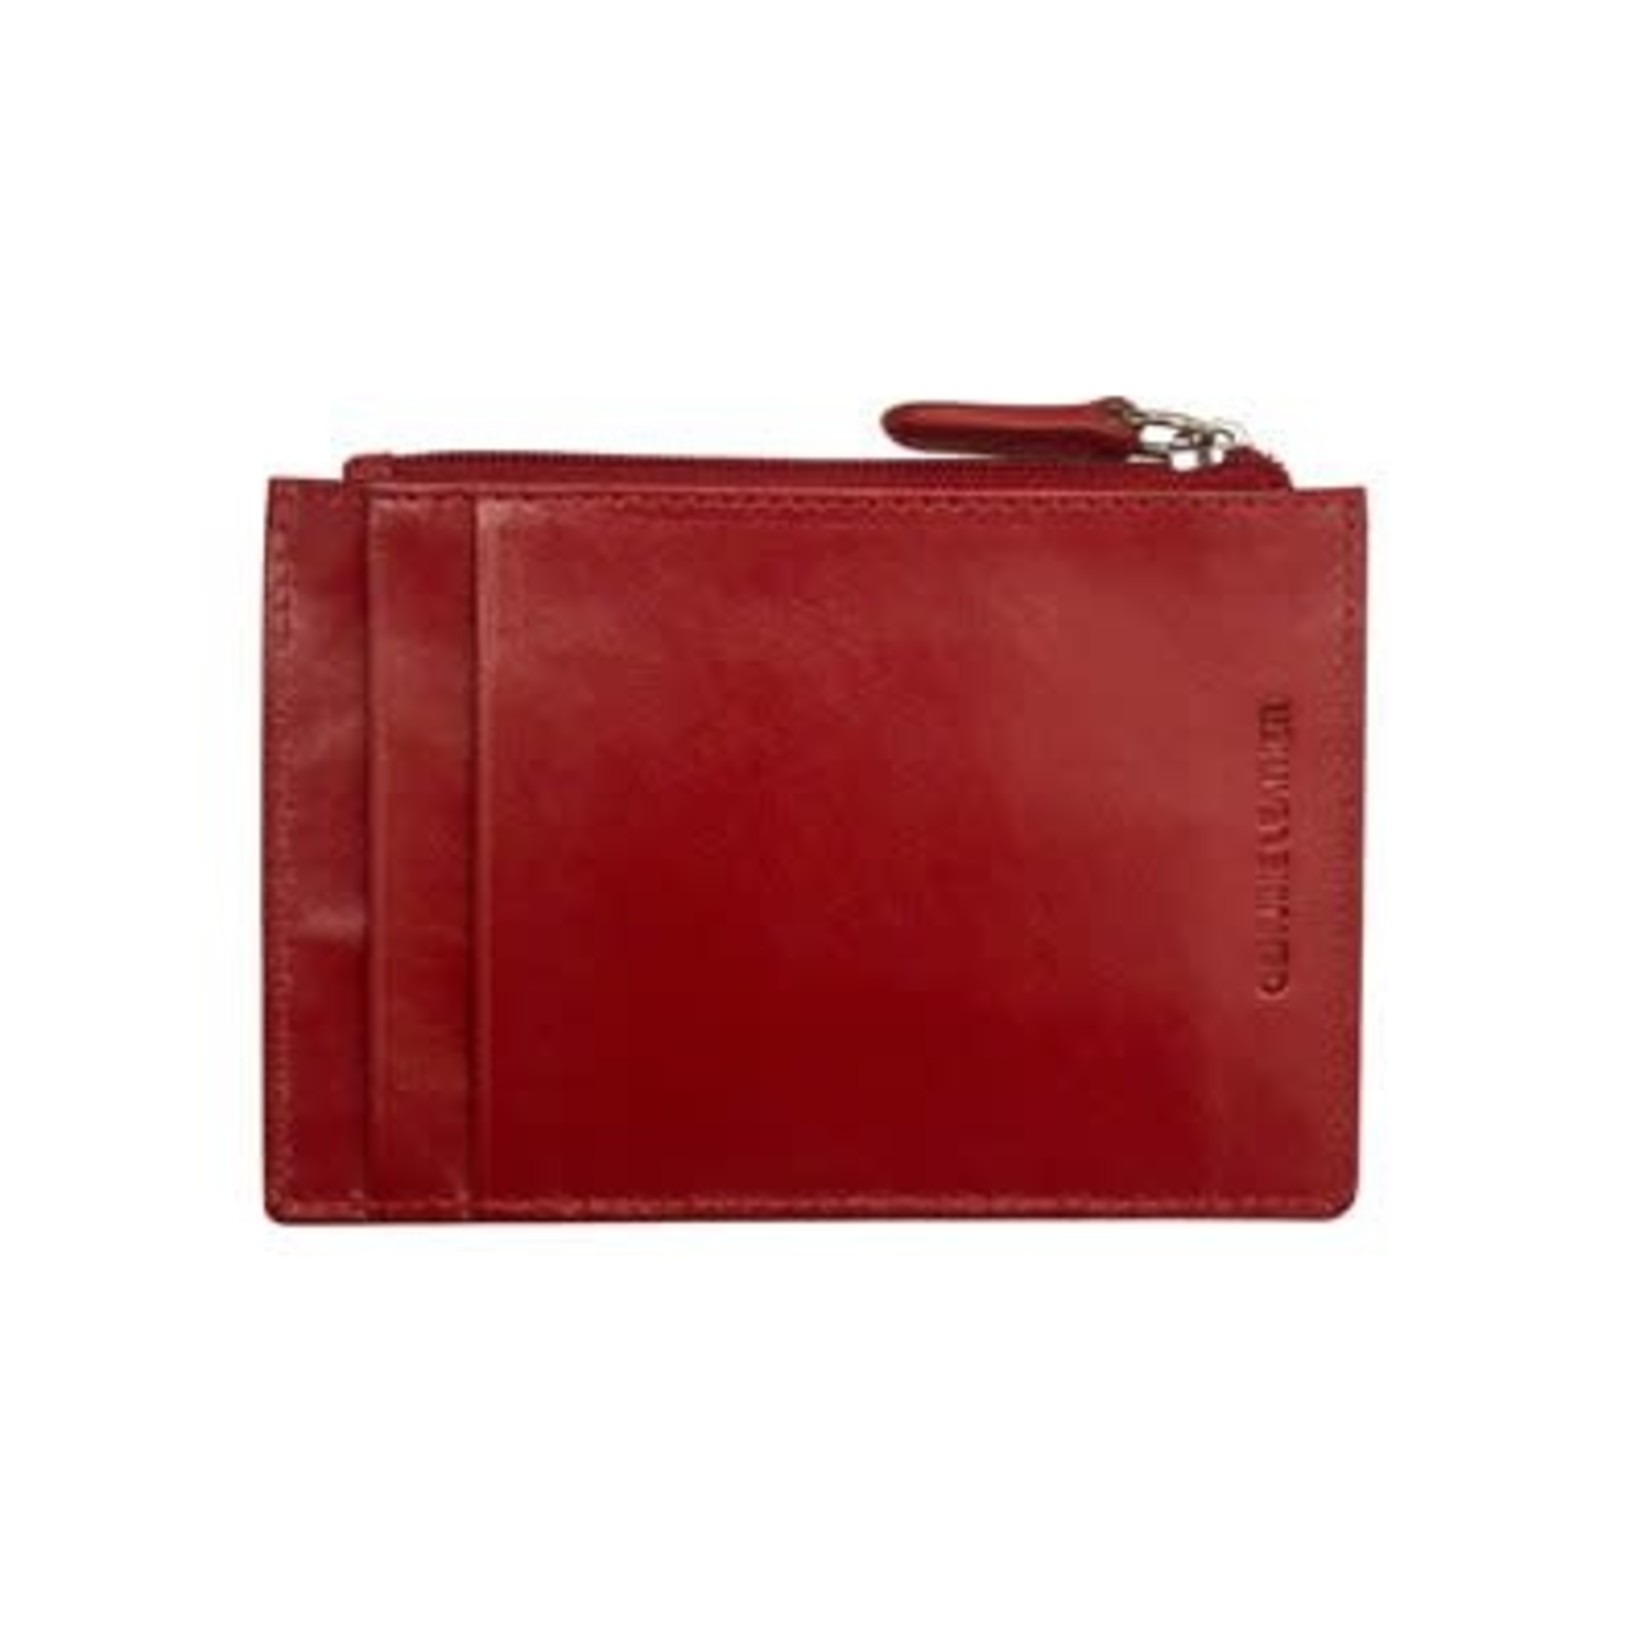 Leather Handbags and Accessories 7416 Red - RFID Card Holder